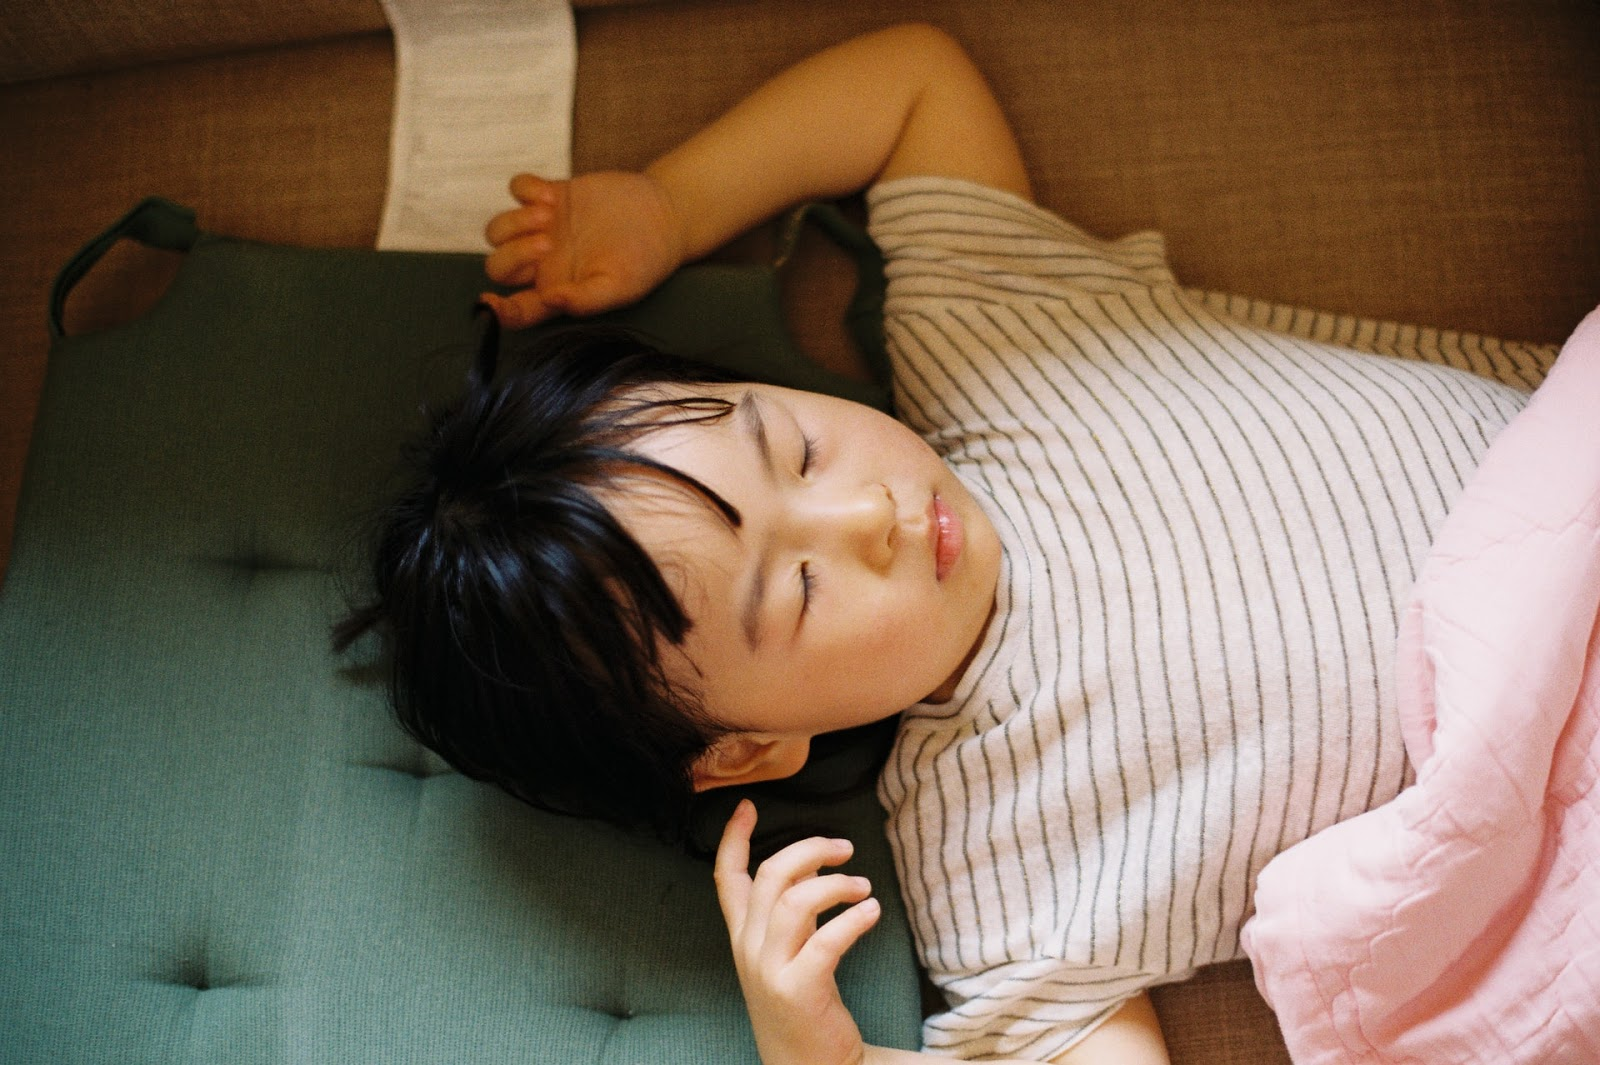 child sleeping on green sofa